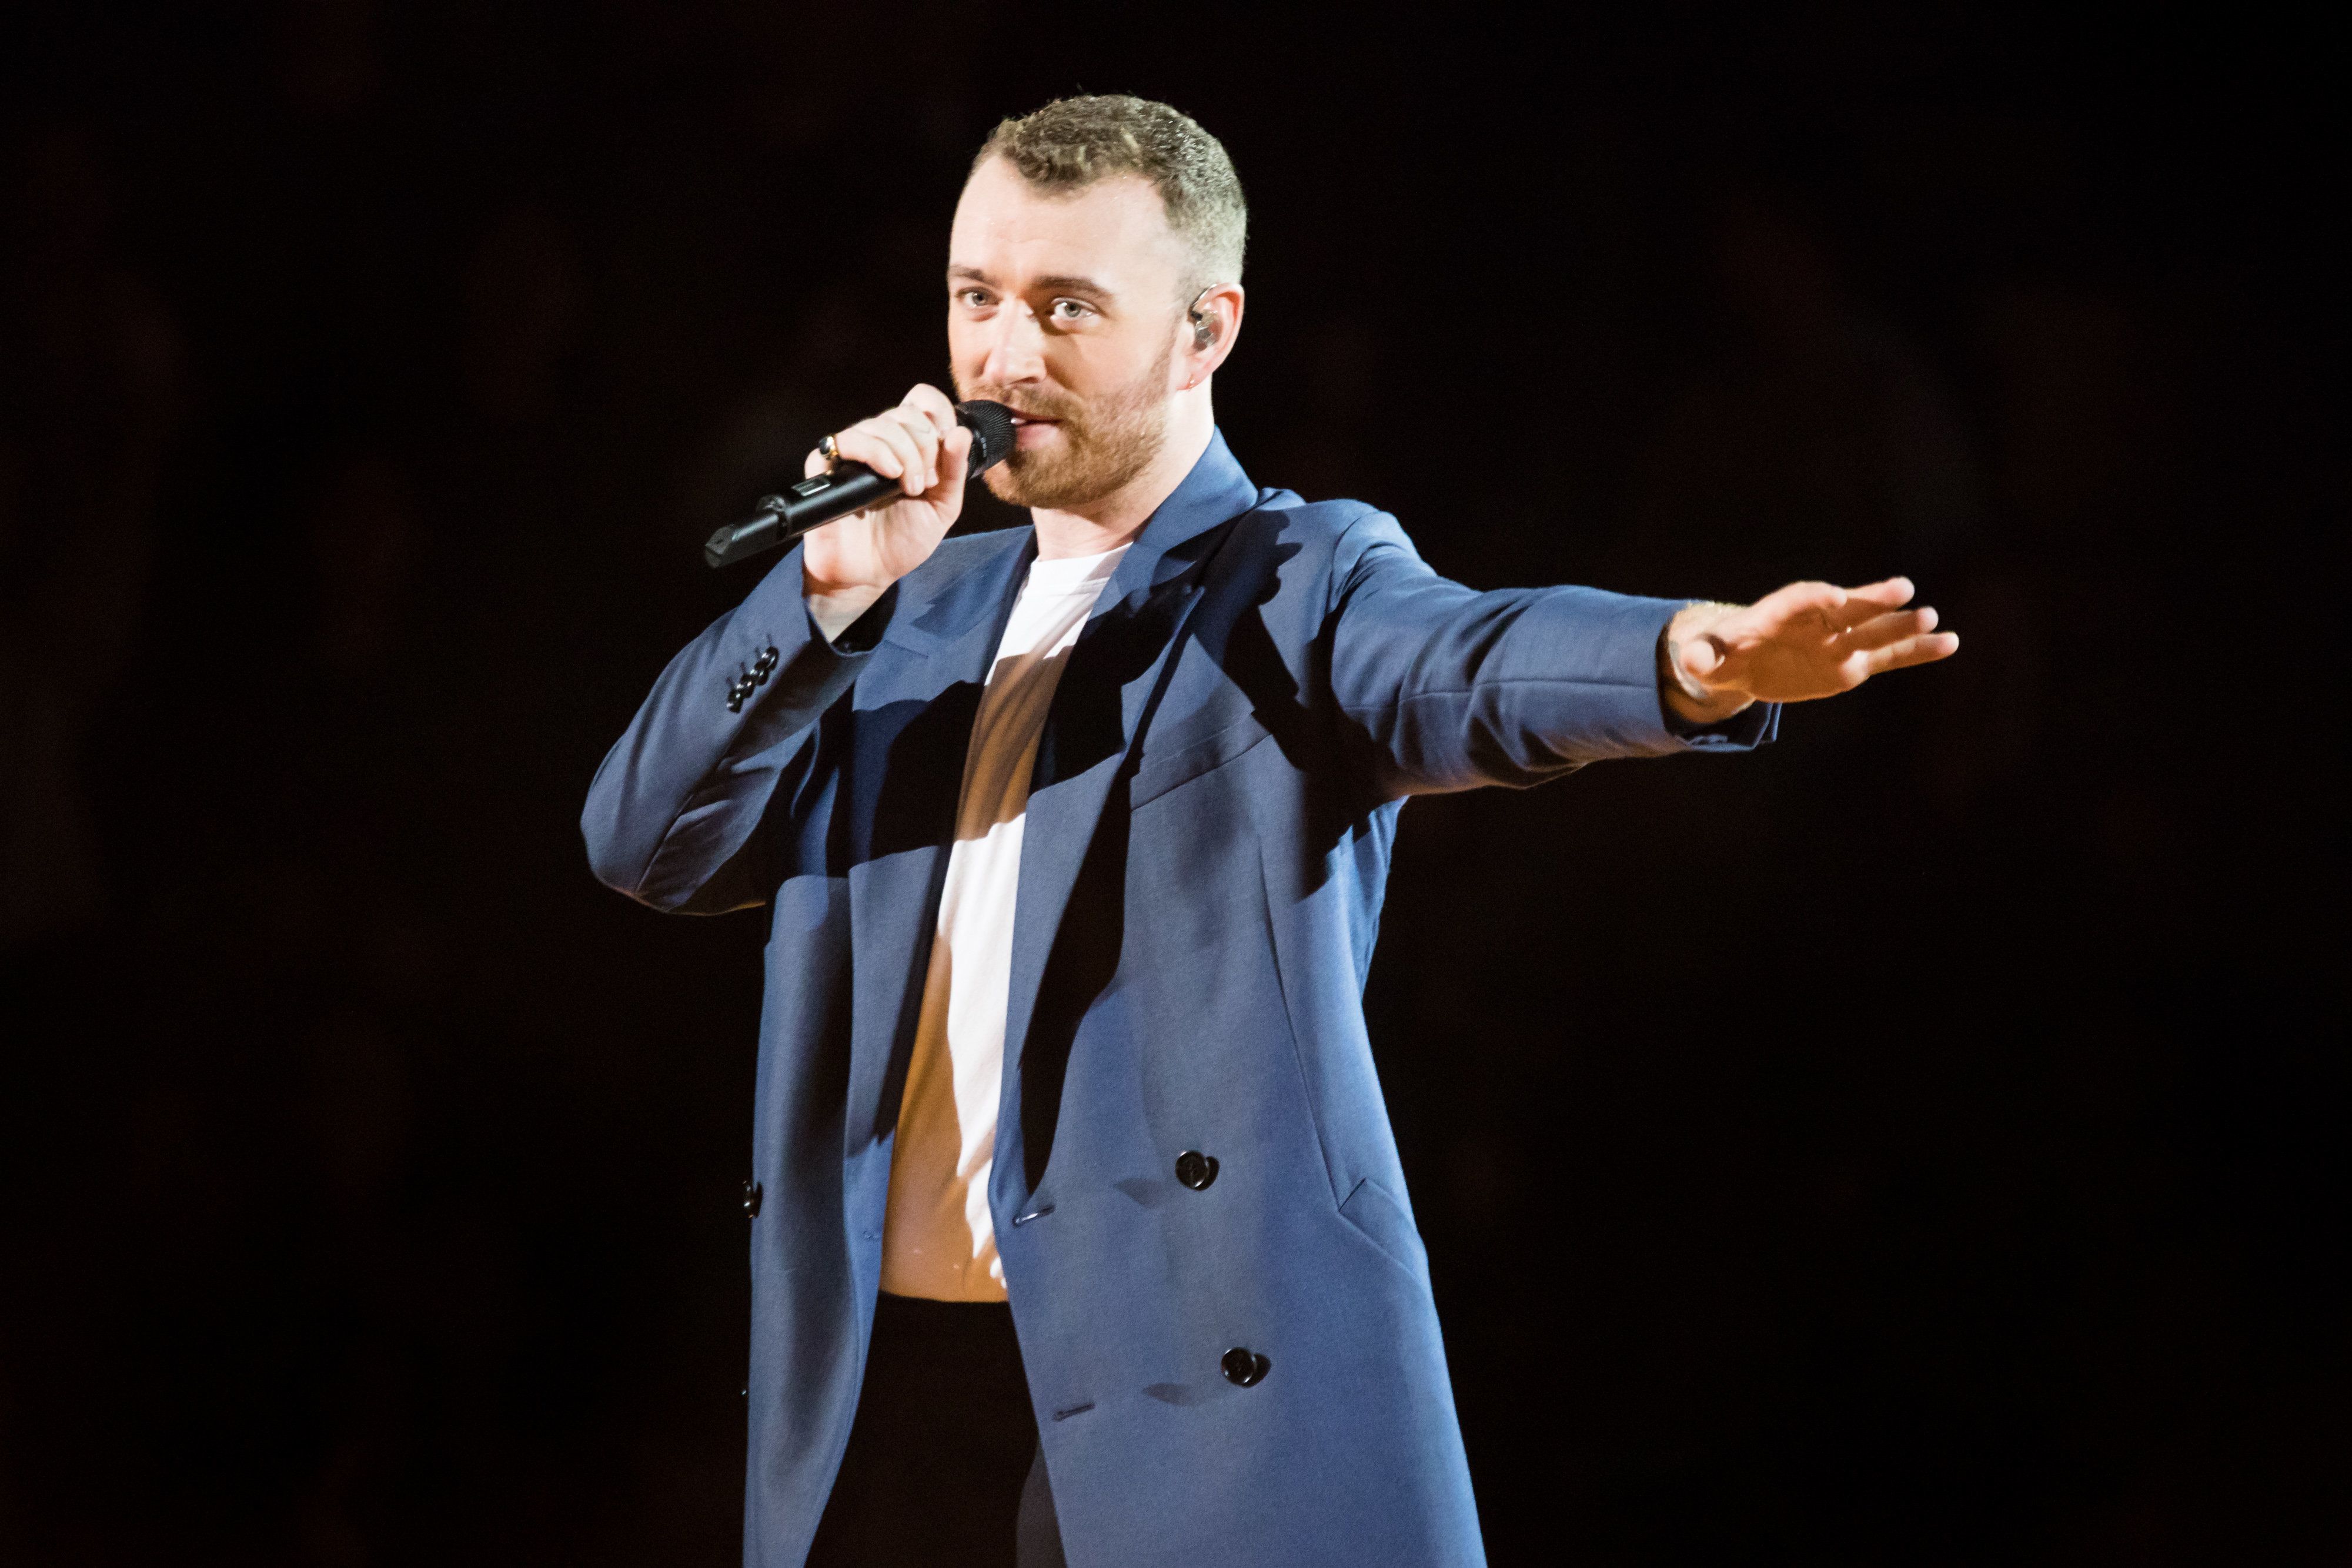 Sam Smith Says Shirtless Photo-Shoot Was His Way Of 'Reclaiming His Body' After Past 'Body